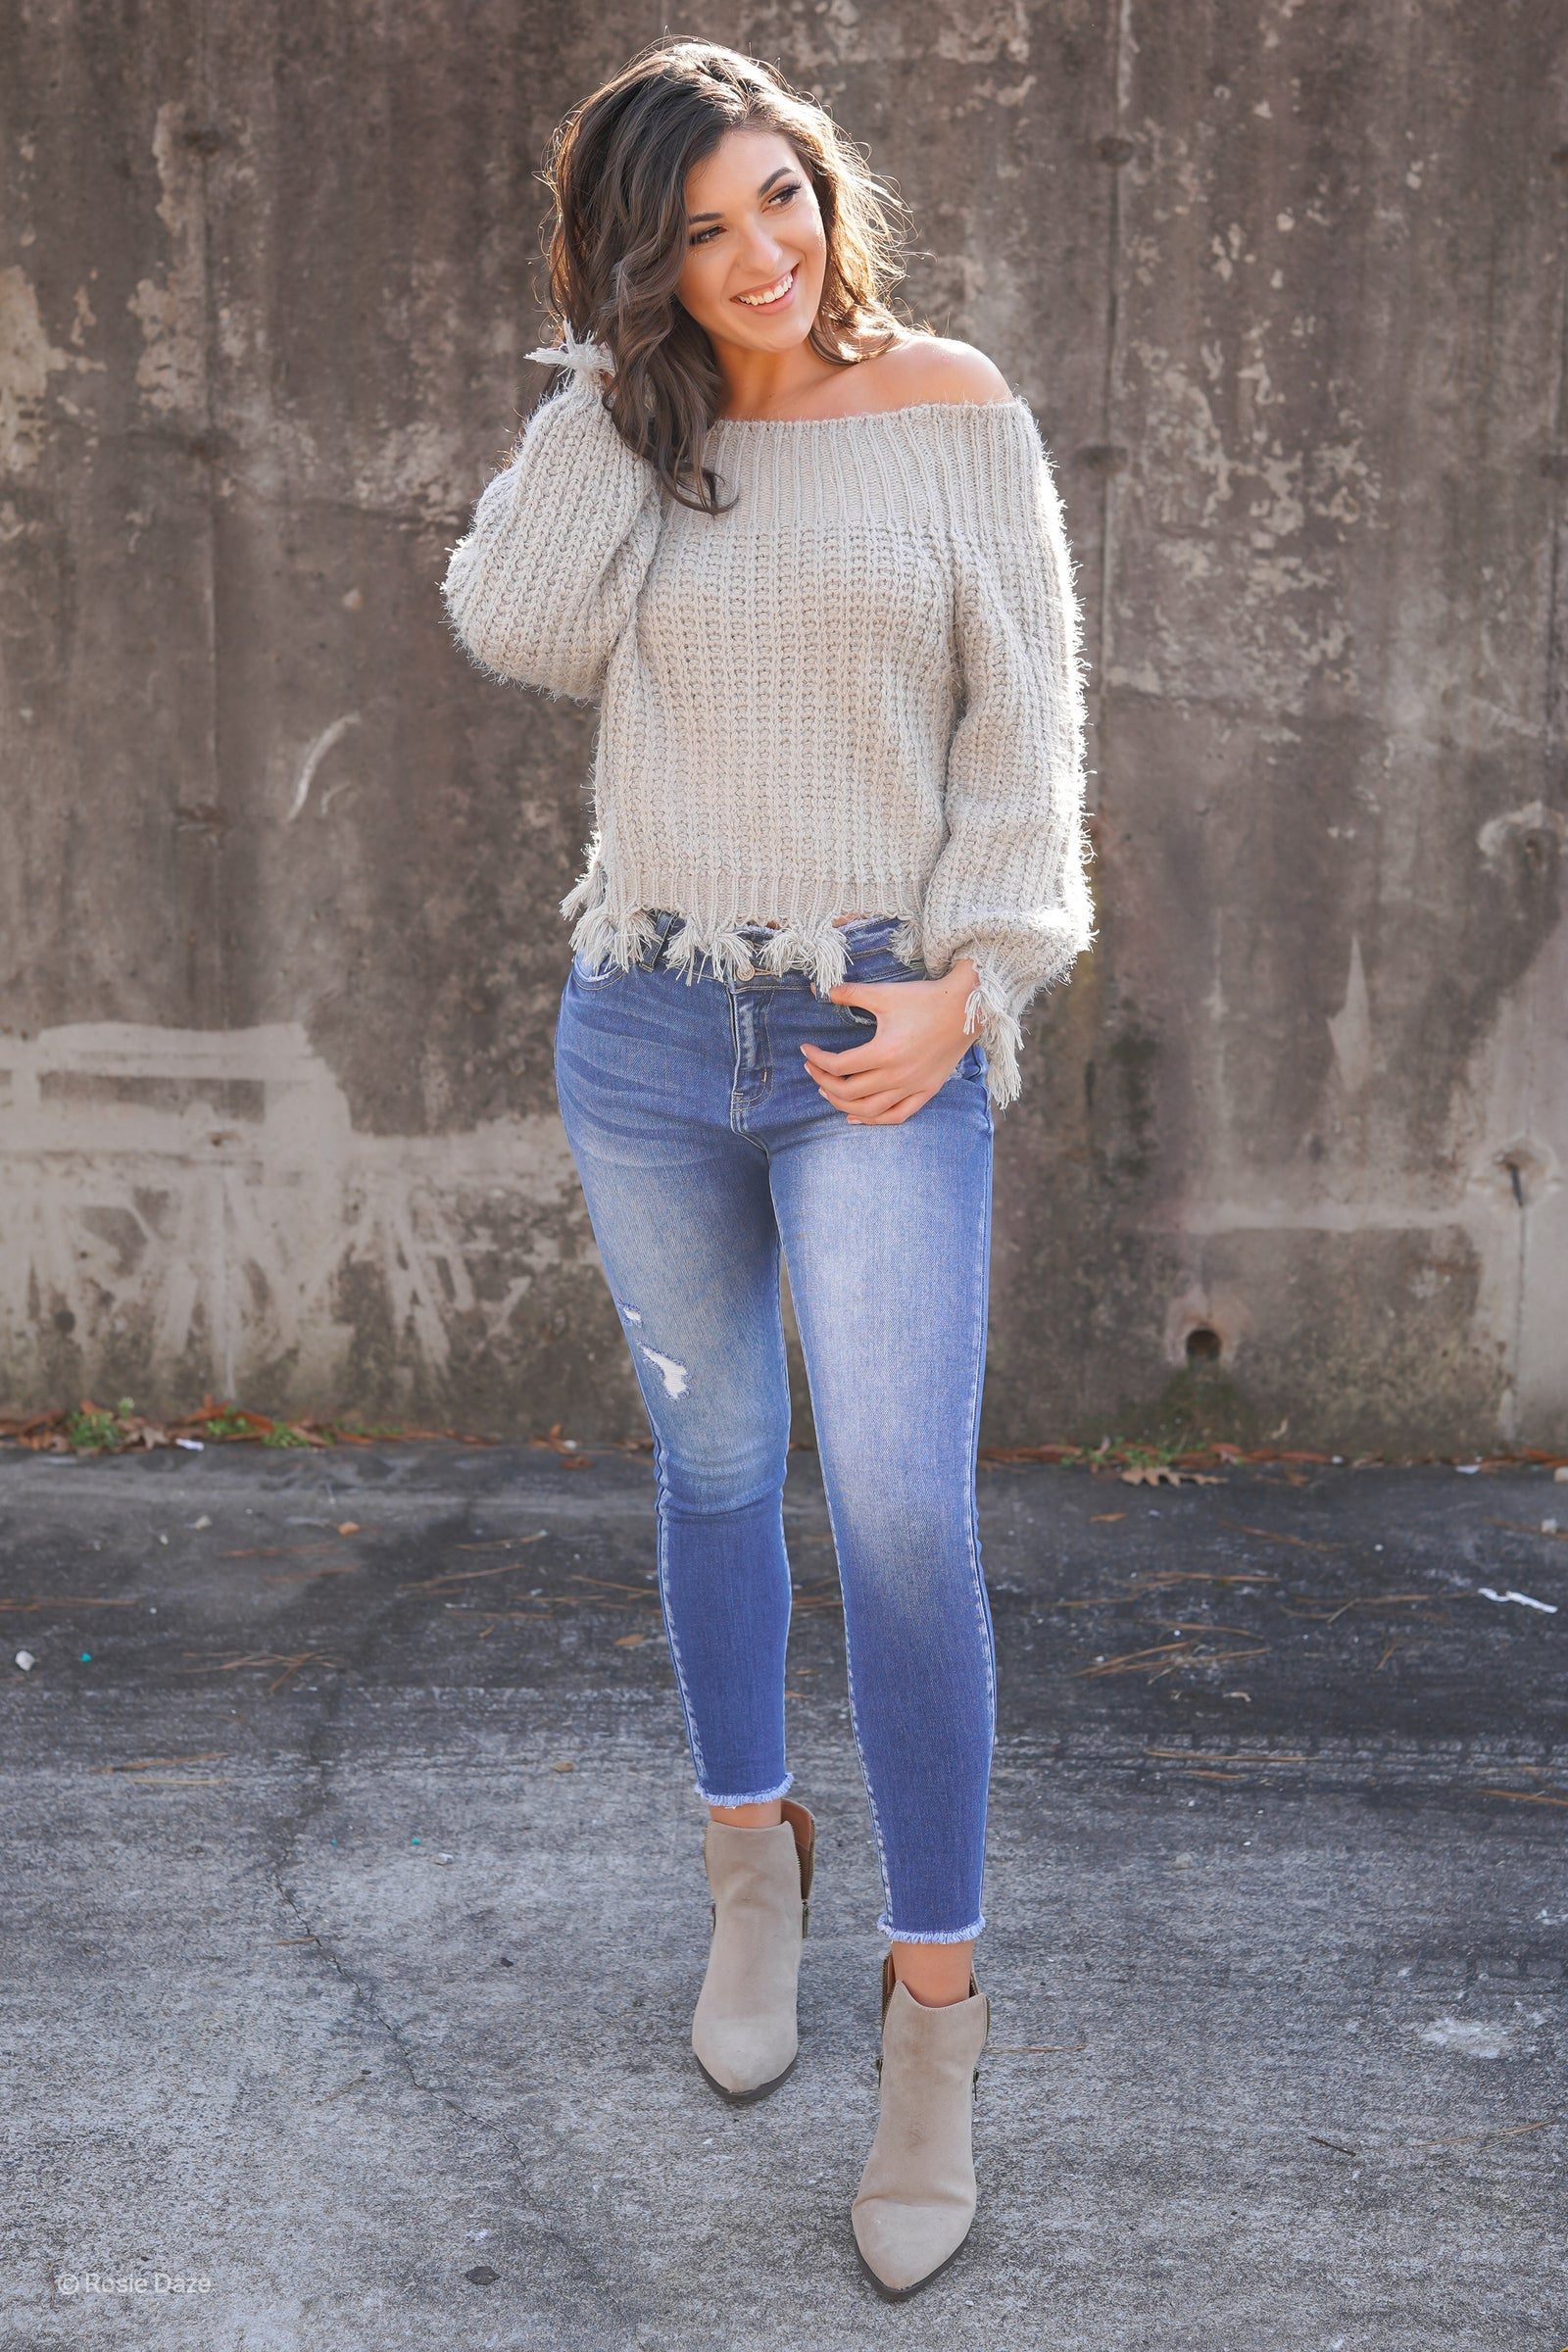 The Wesley Distressed Sweater